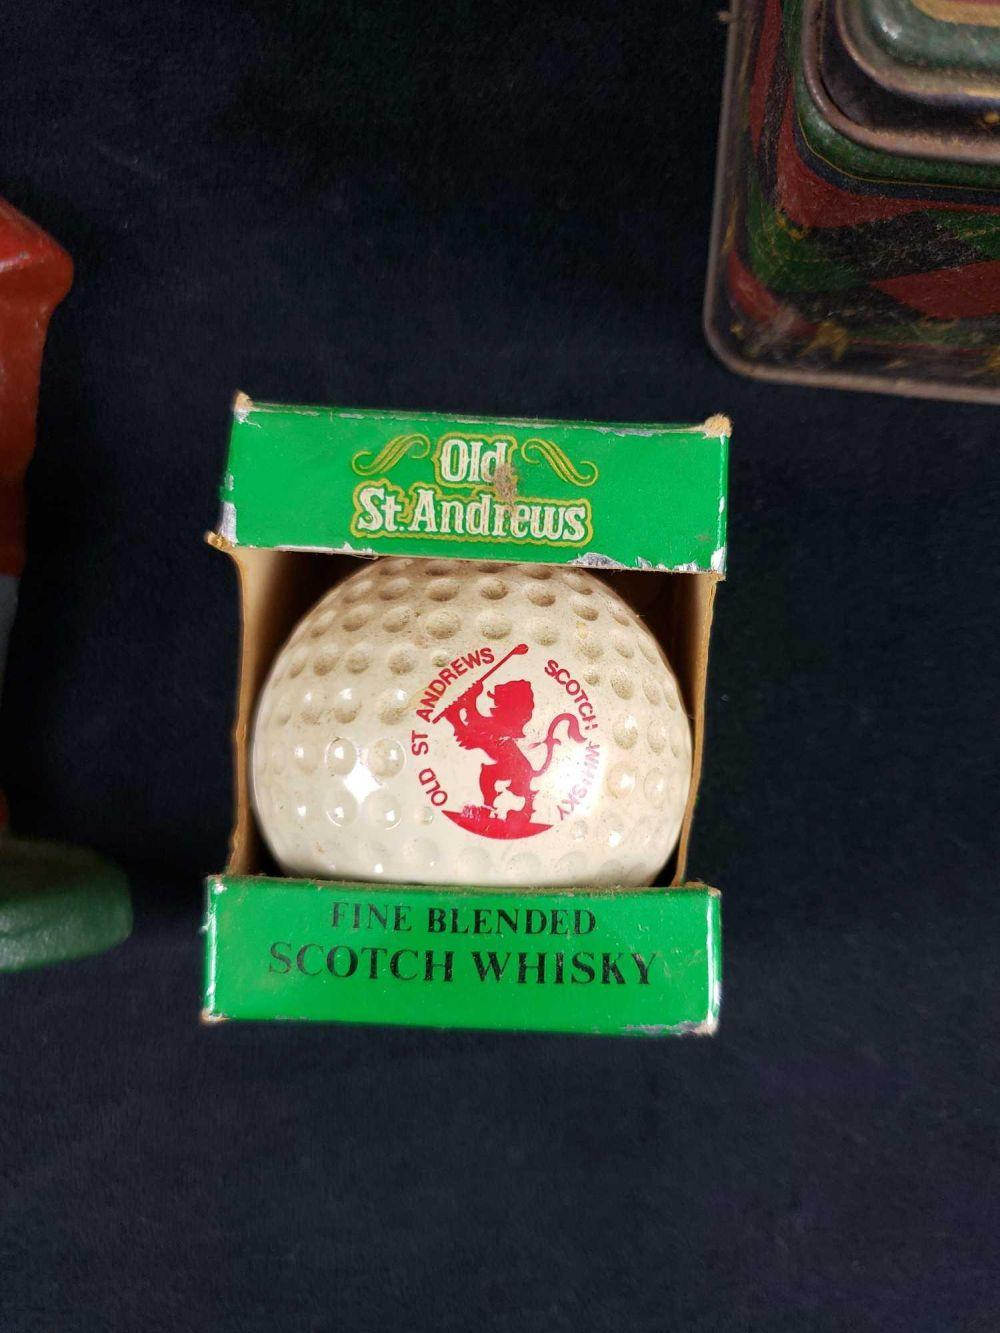 Lot 305: Lot of 4 Vintage Golf Enthusiast Themed Items